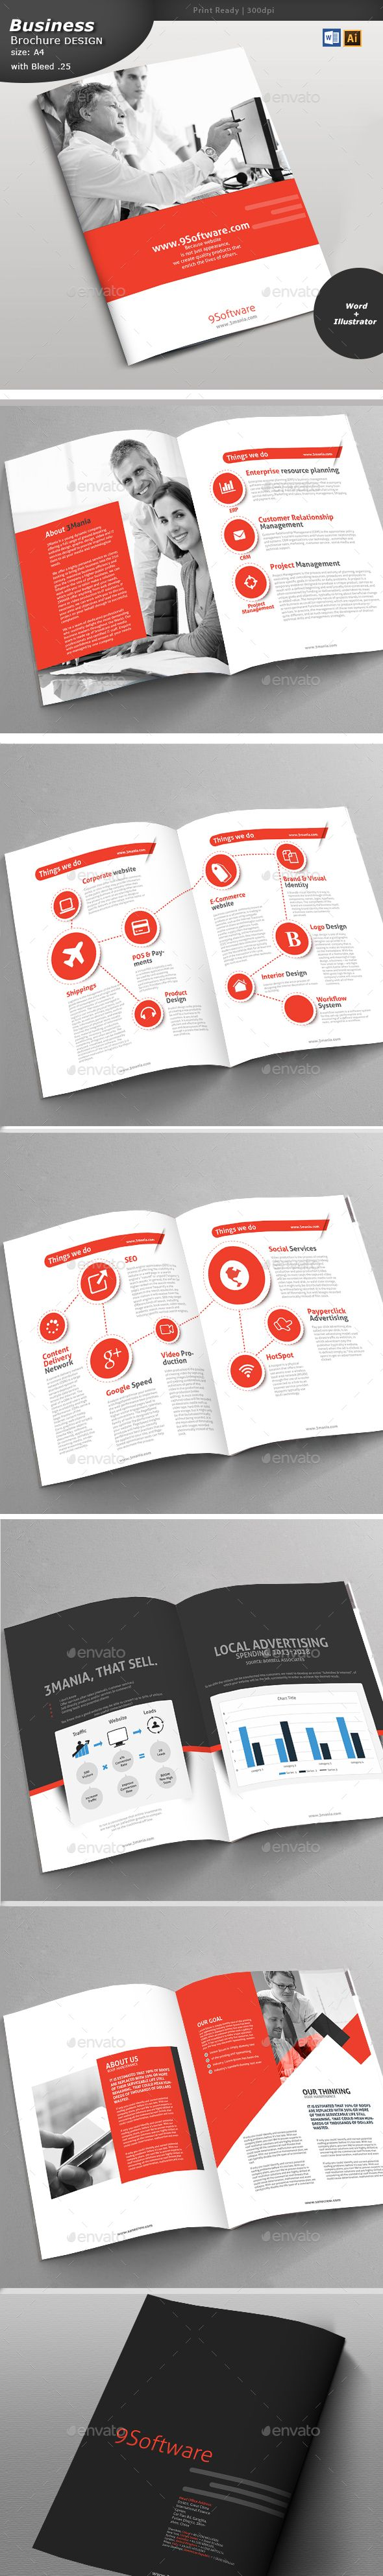 Erp Services Brochure Design  Brochures Brochure Template And